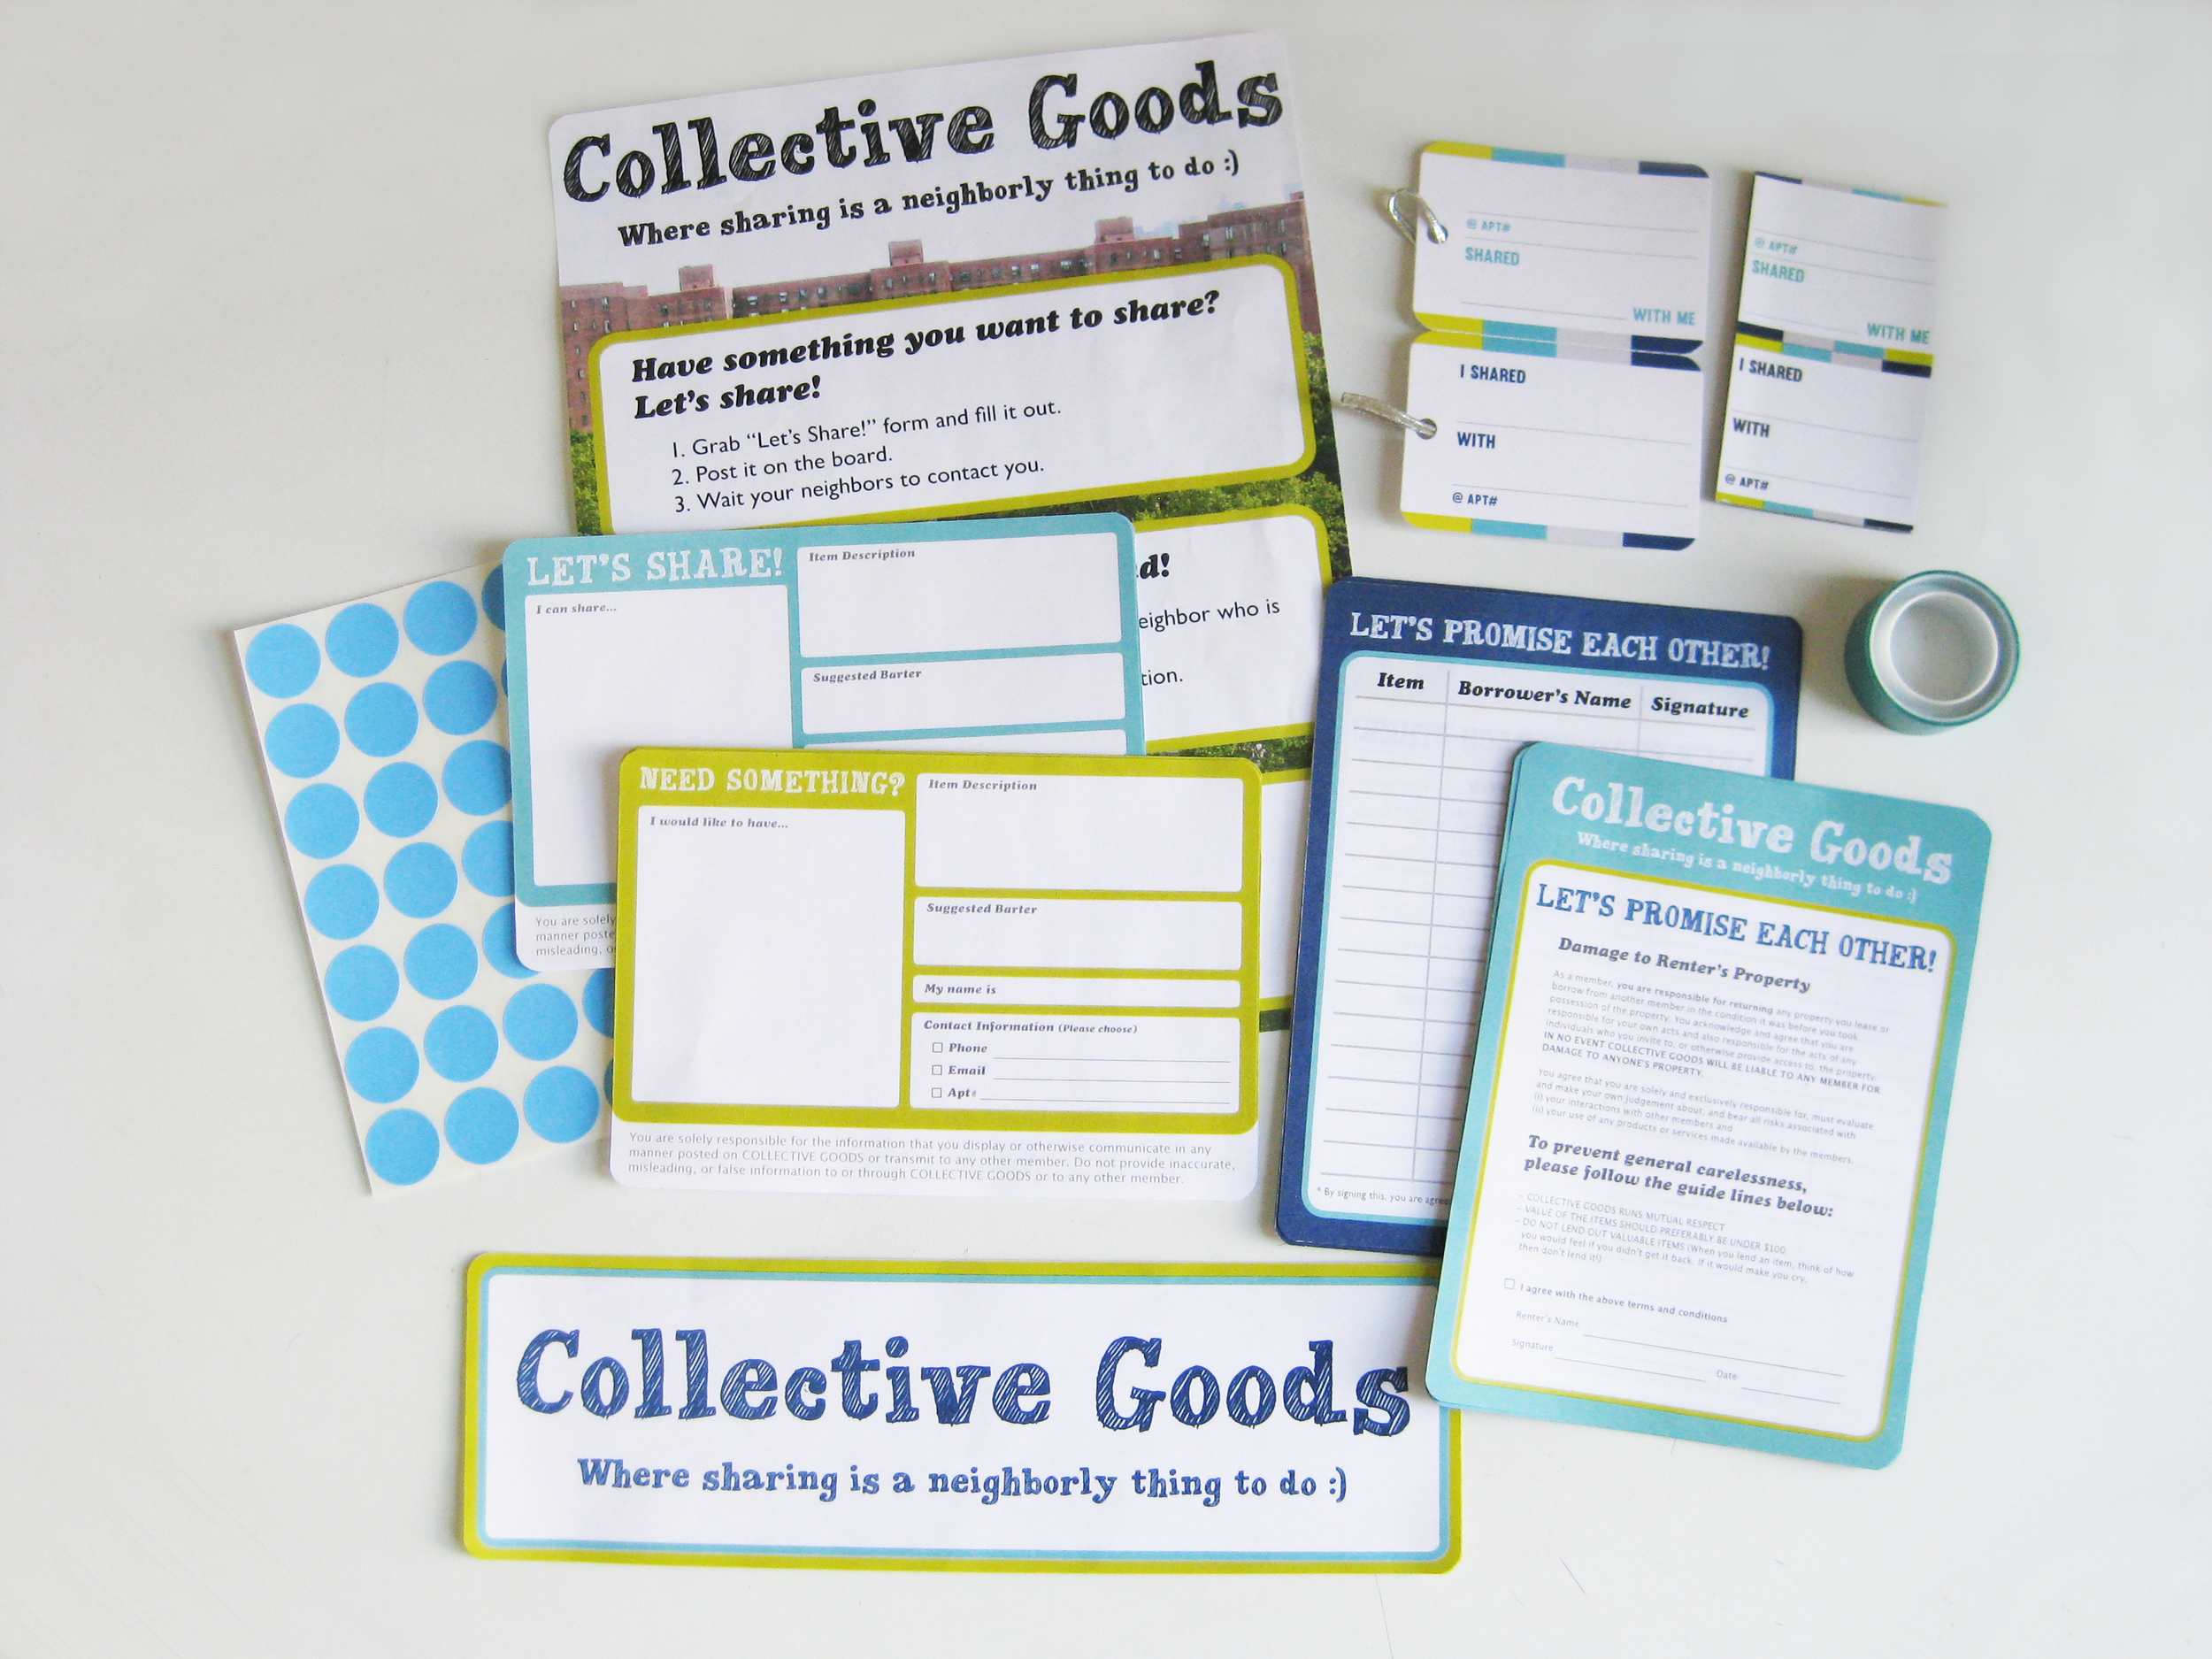 Collective Goods_3.JPG